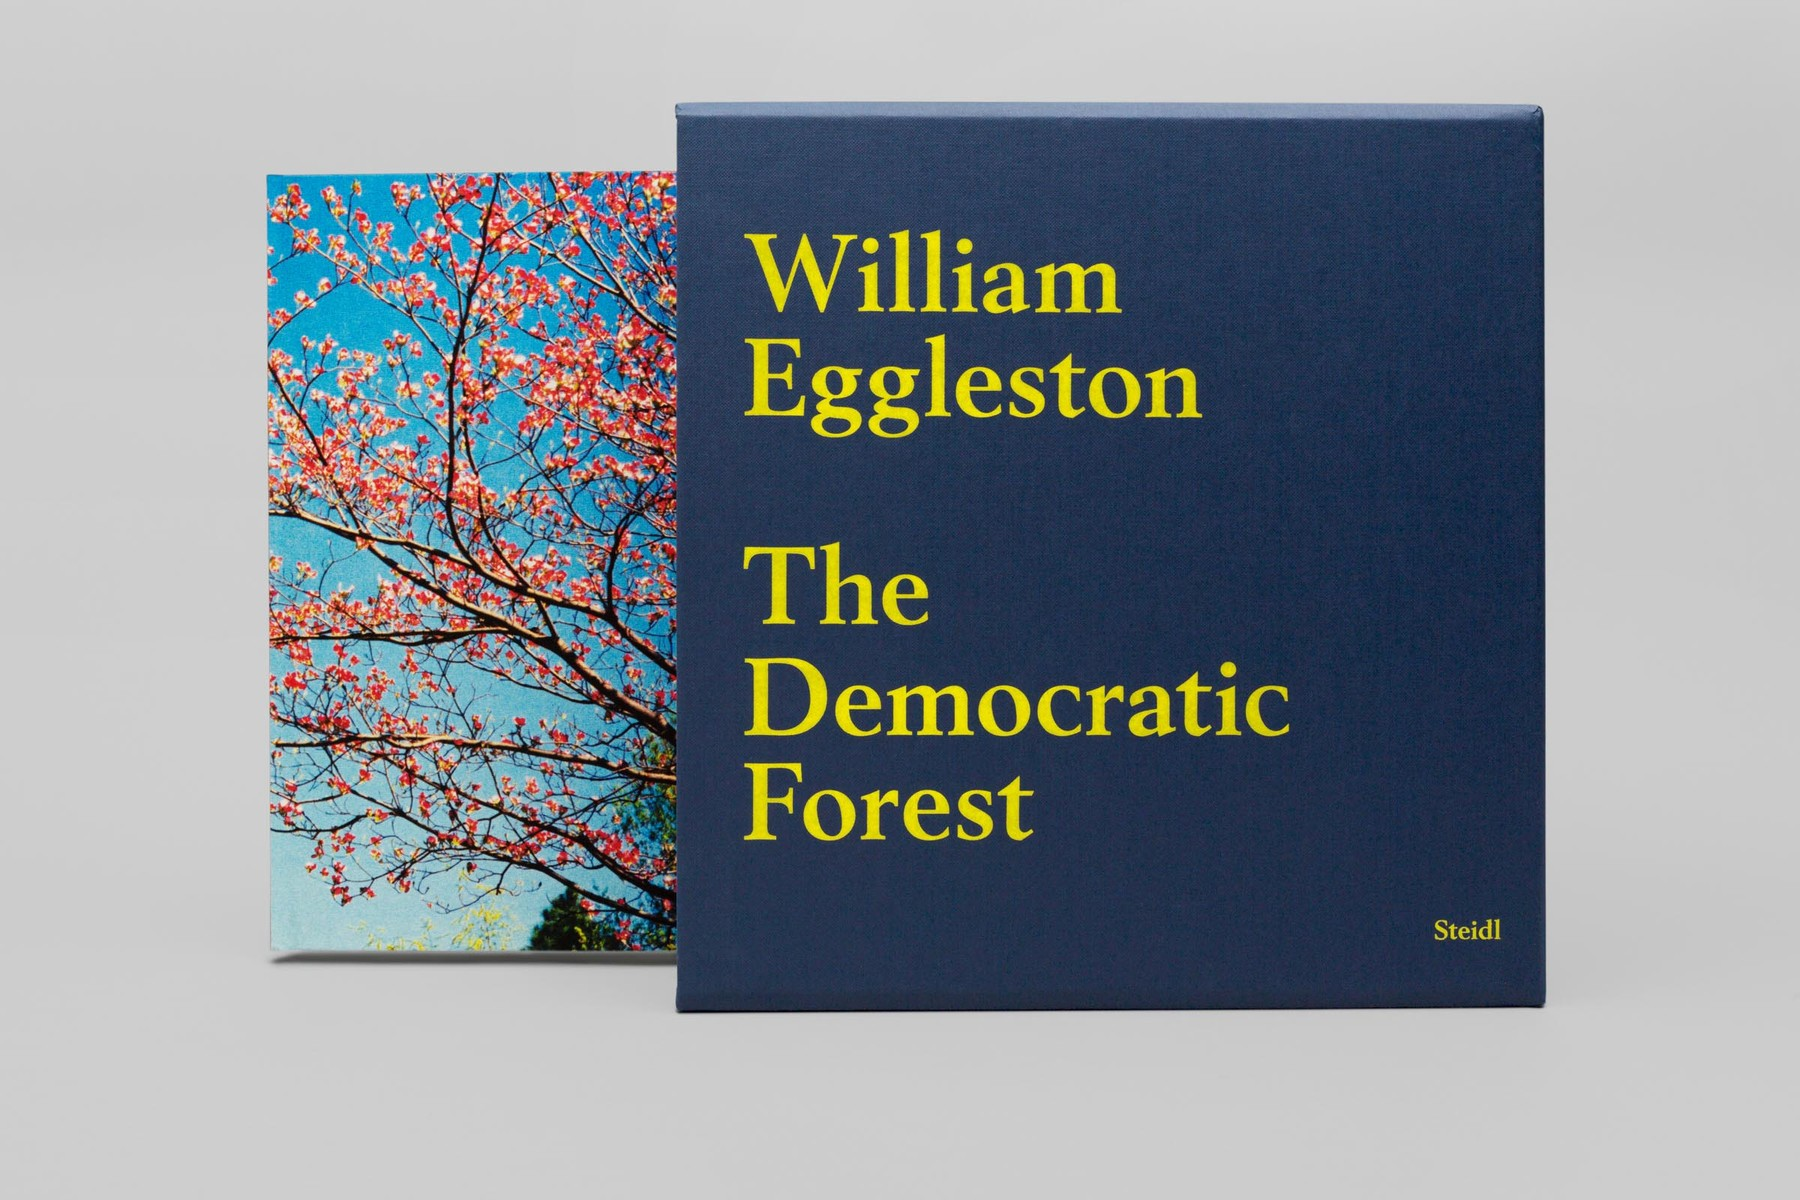 william-eggleston-the-democratic-forest-01.jpg.jpg